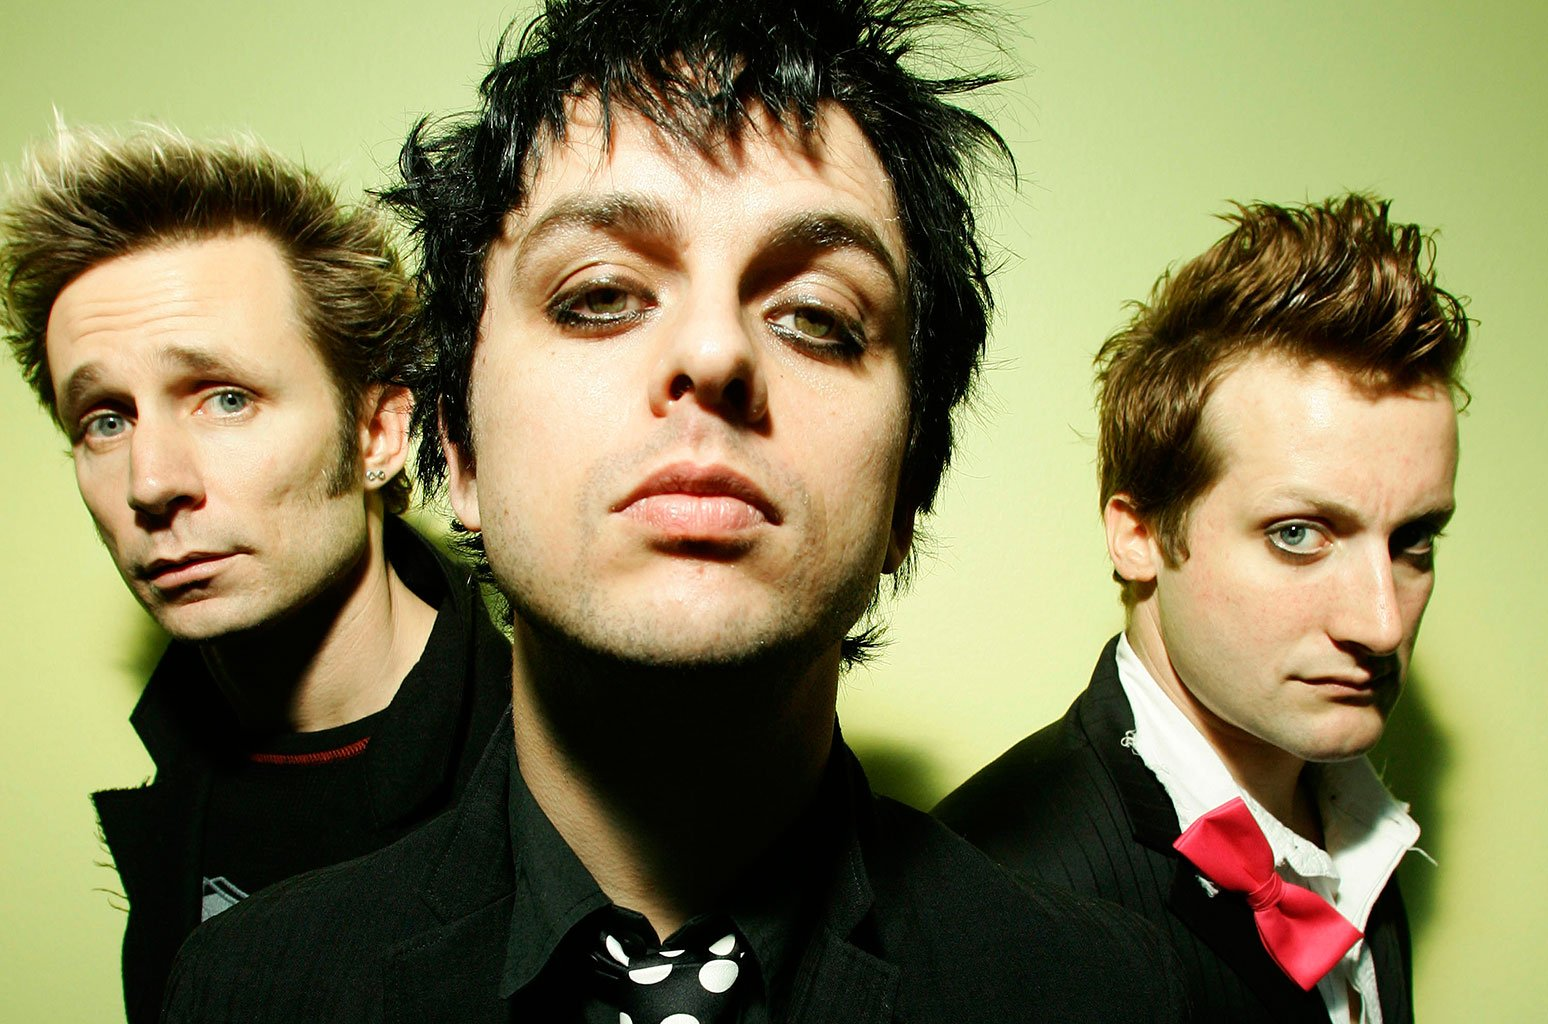 Who is the Lead Singer of Green Day?